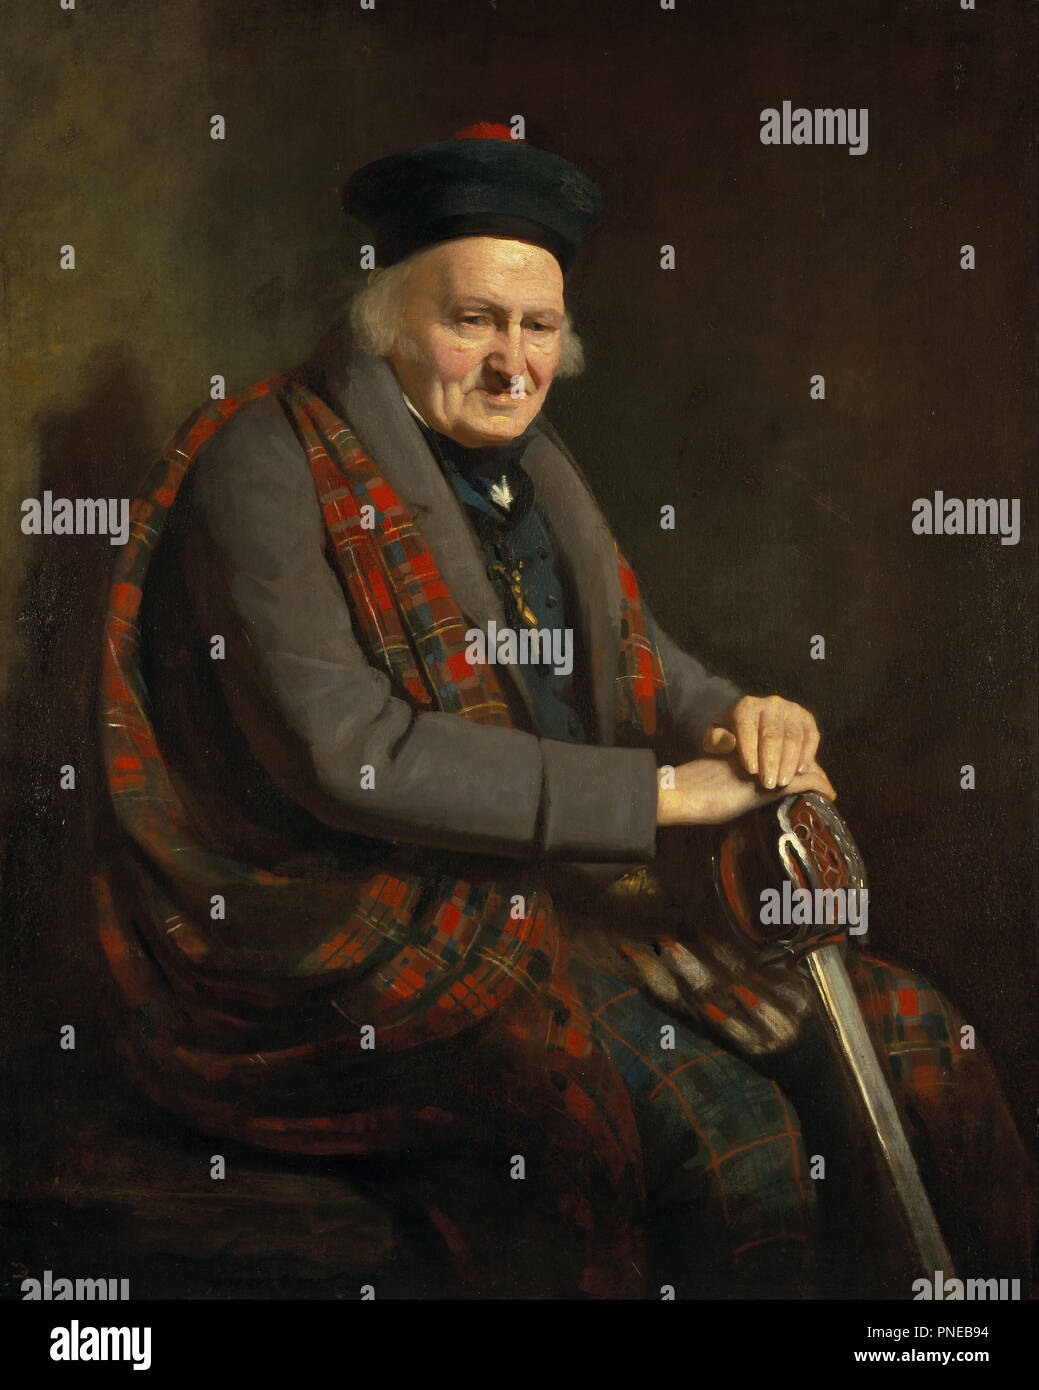 Patrick Grant [Pàdraig Grannd an Dubh-bhruaich], 1713 / 1714 - 1824. Date/Period: 1822. Painting. Oil on canvas. Height: 1,260 mm (49.60 in); Width: 1,010 mm (39.76 in). Author: Colvin Smith. - Stock Image